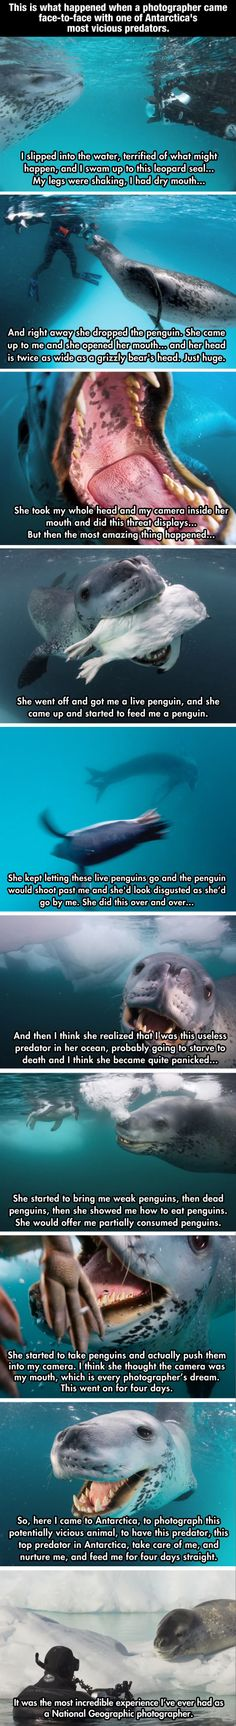 This is amazing! Watch the video here: http://youtu.be/Zxa6P73Awcg #leopardseal #nationalgeographic